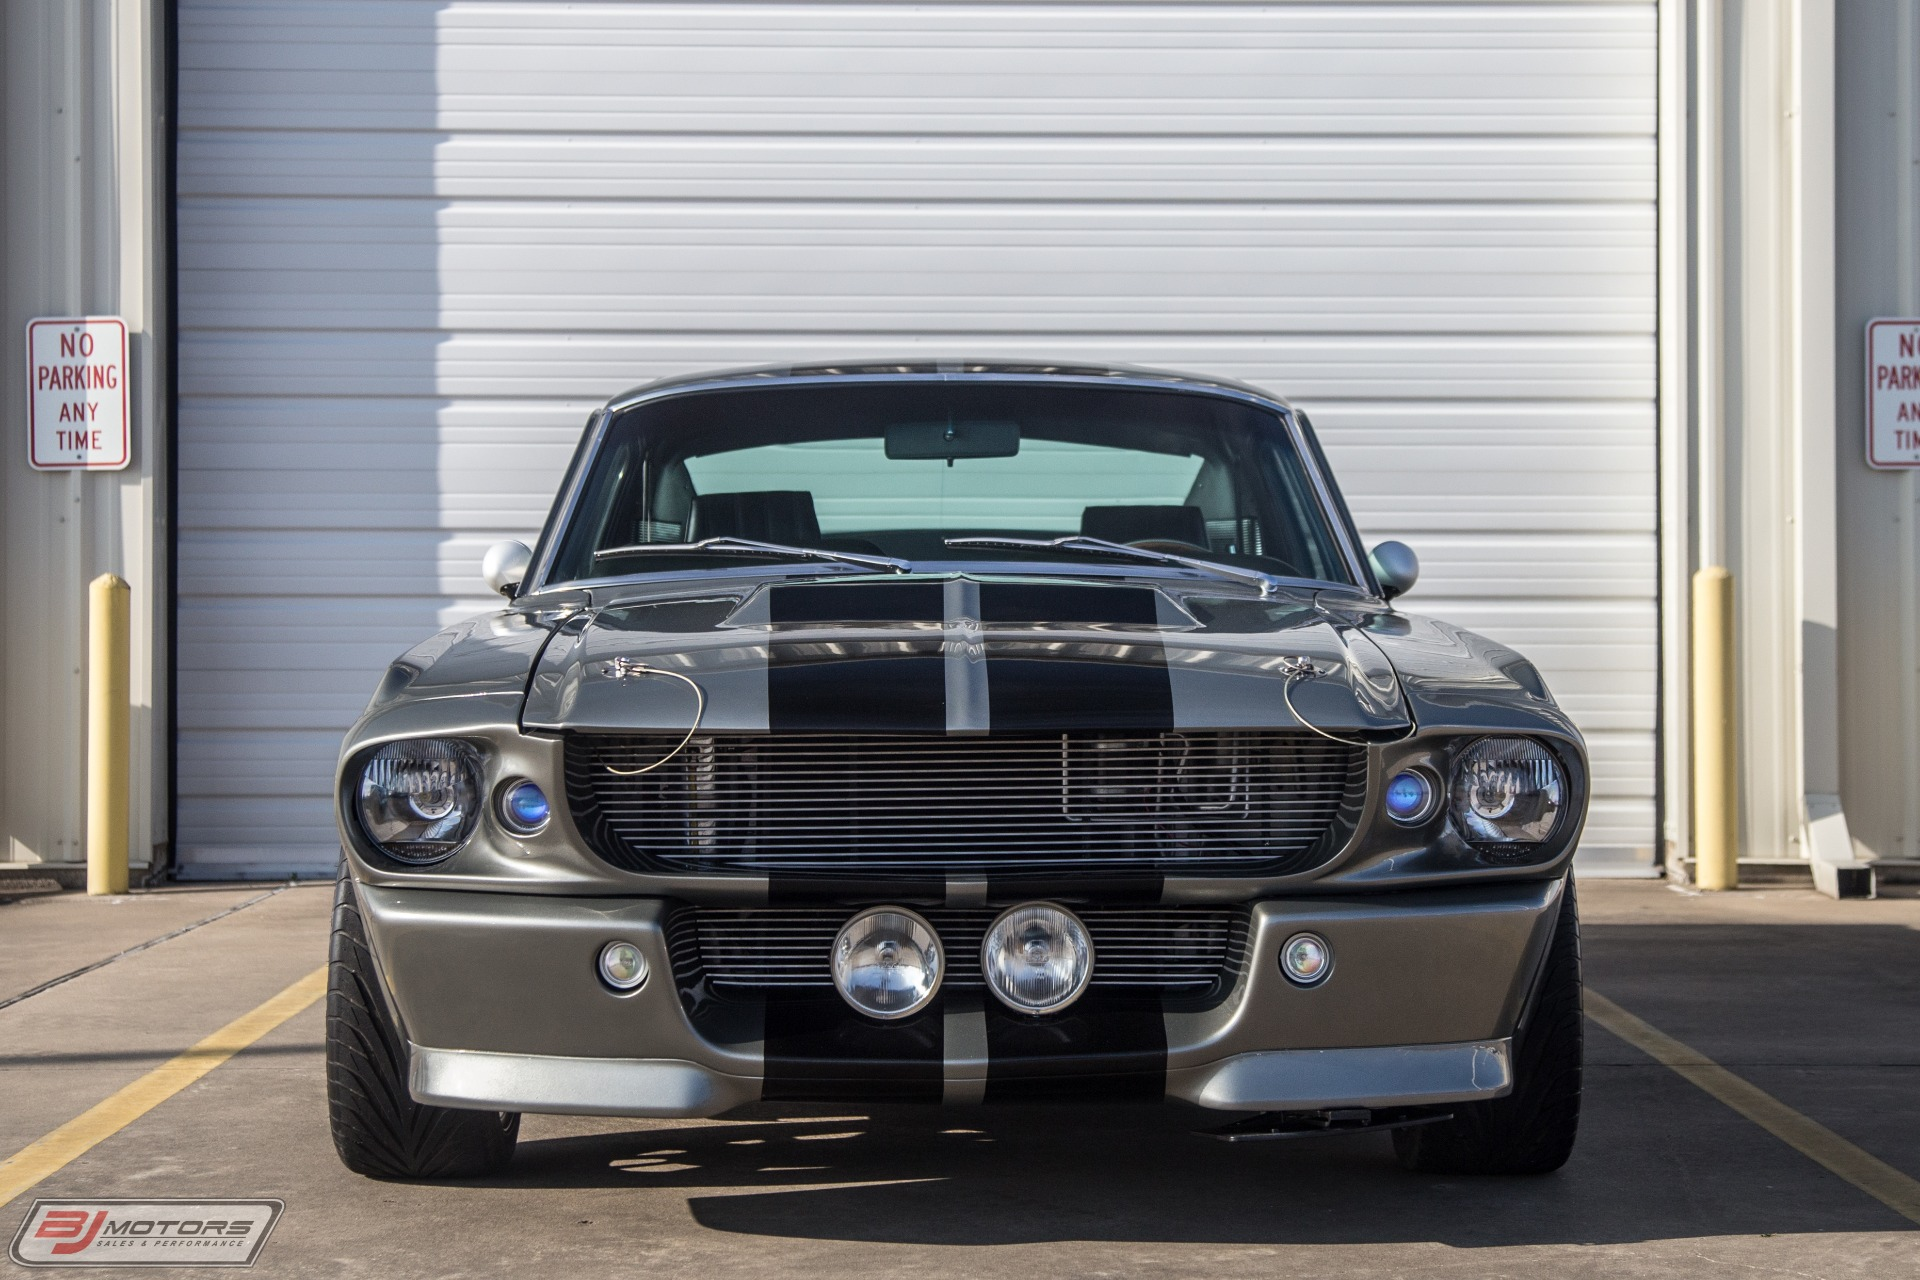 Used 1967 ford mustang gt500 eleanor clone for sale 109995 bj